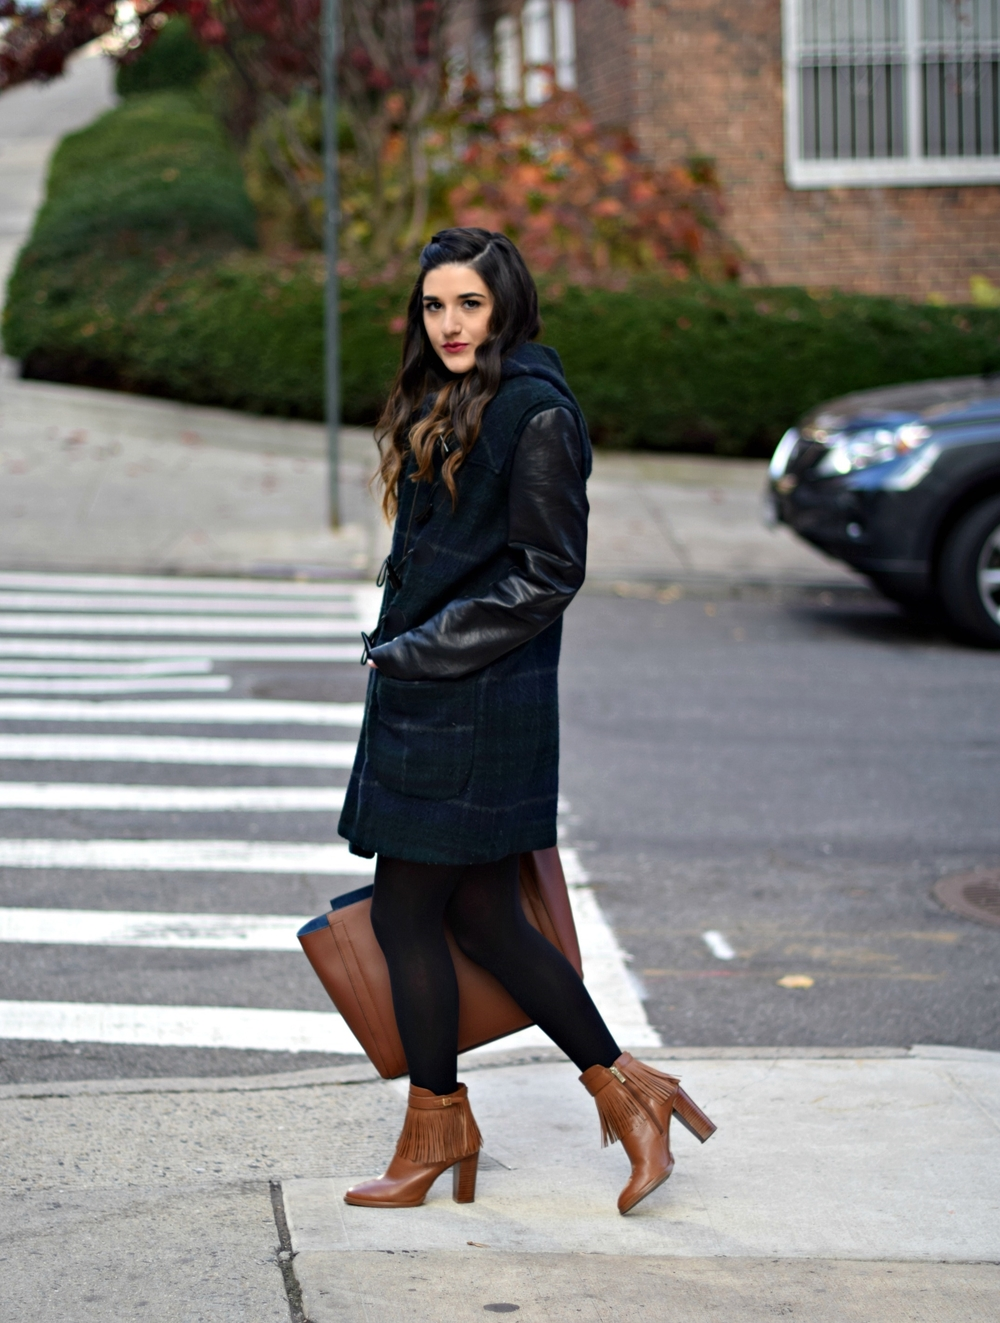 Navy Romper Fringe Booties Louboutins & Love Fashion Blog Esther Santer NYC Street Style Blogger Zara Plaid Coat Leather Sleeves Girl Women OOTD Outfit Soho Tote Ivanka Trump Accessories Black Tights Shoes Boots Winter Inspo Hair Braid Rings Jewelry.jpg